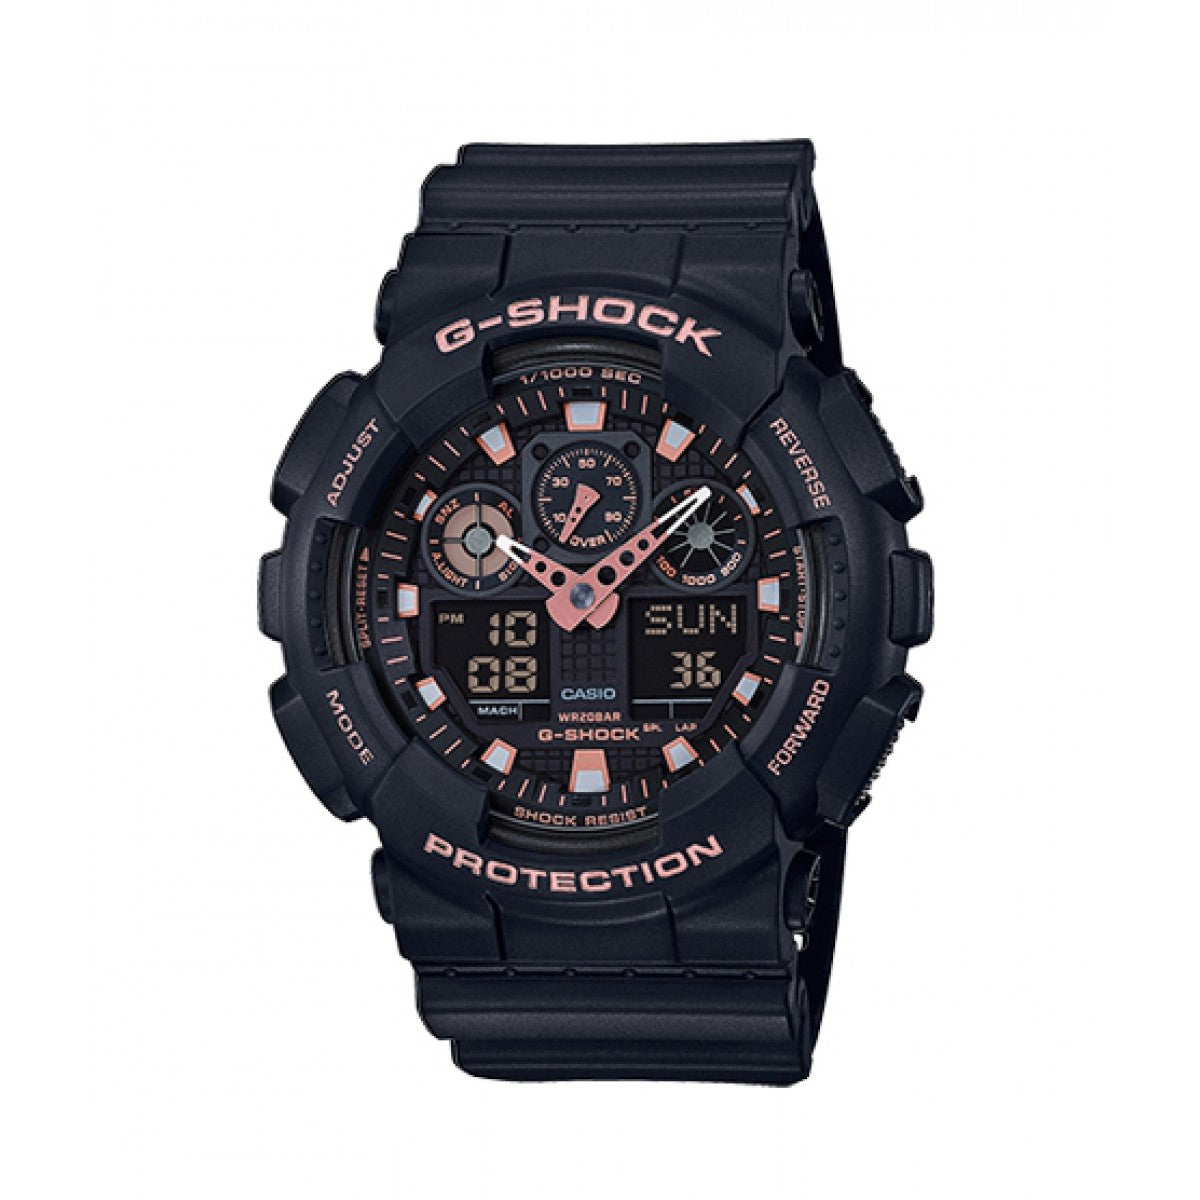 CASIO G-SHOCK GA100GBX-1A4